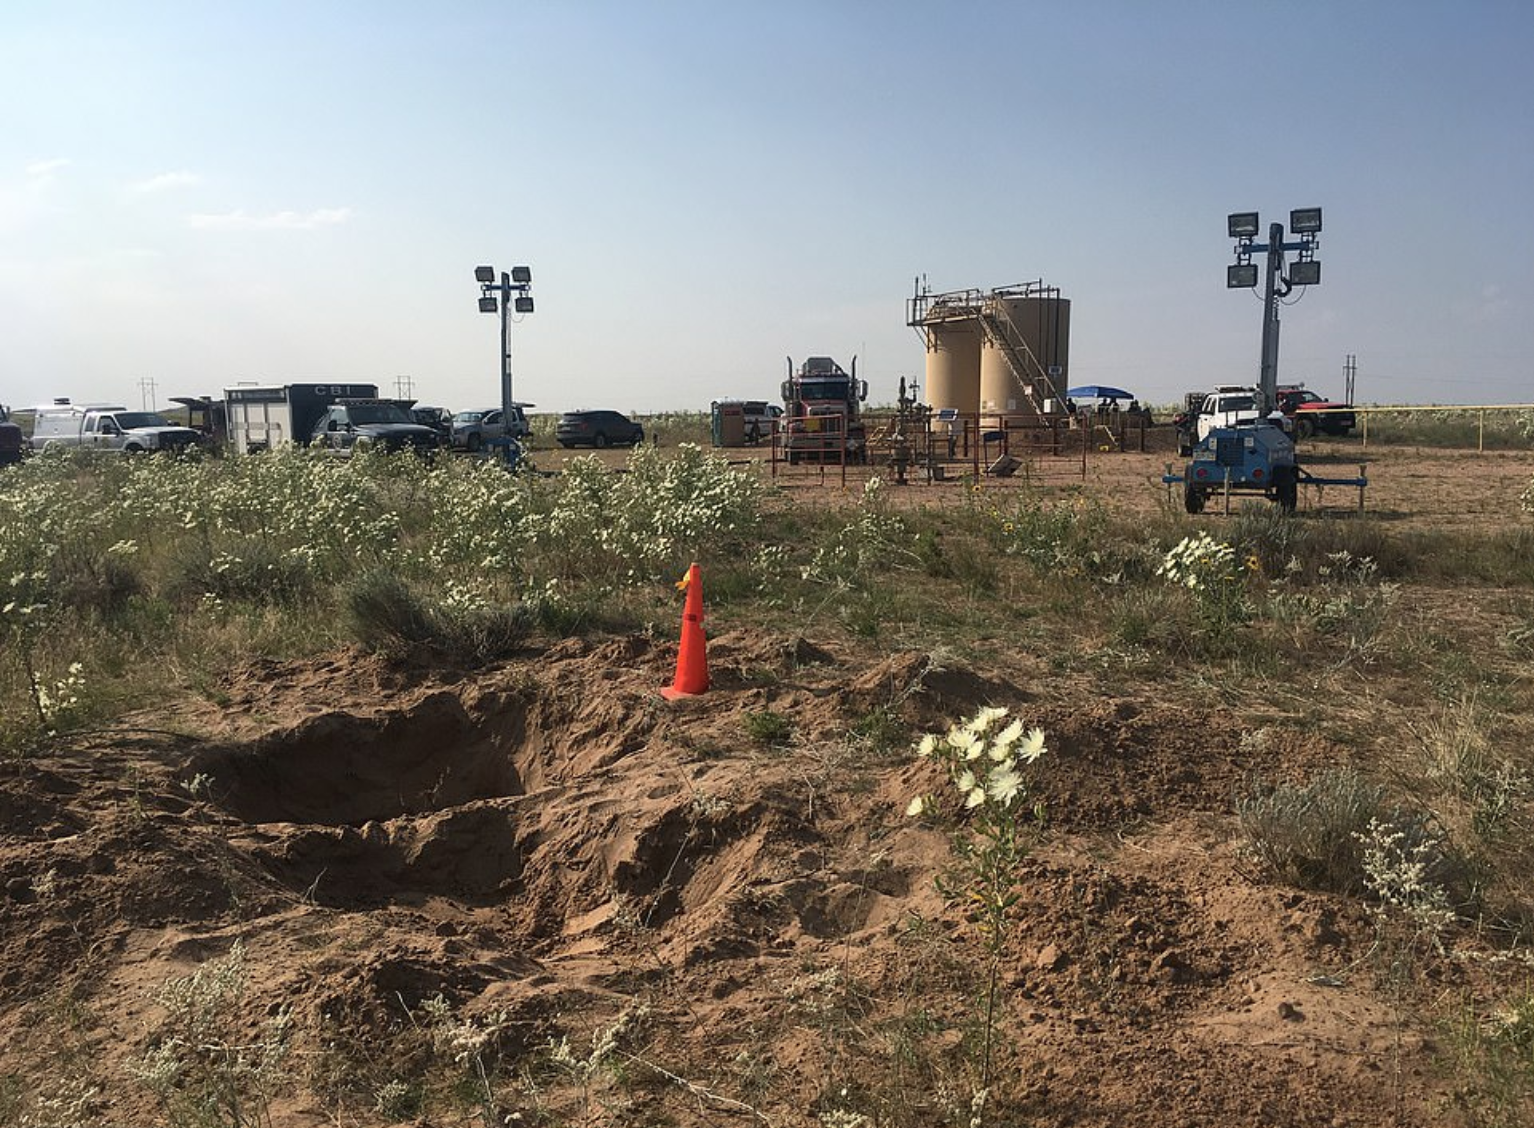 The shallow grave where he buried Shanann and the oil tanks where he immersed the bodies of Bella and Celeste (Source: Weld County District Attorney's Office)